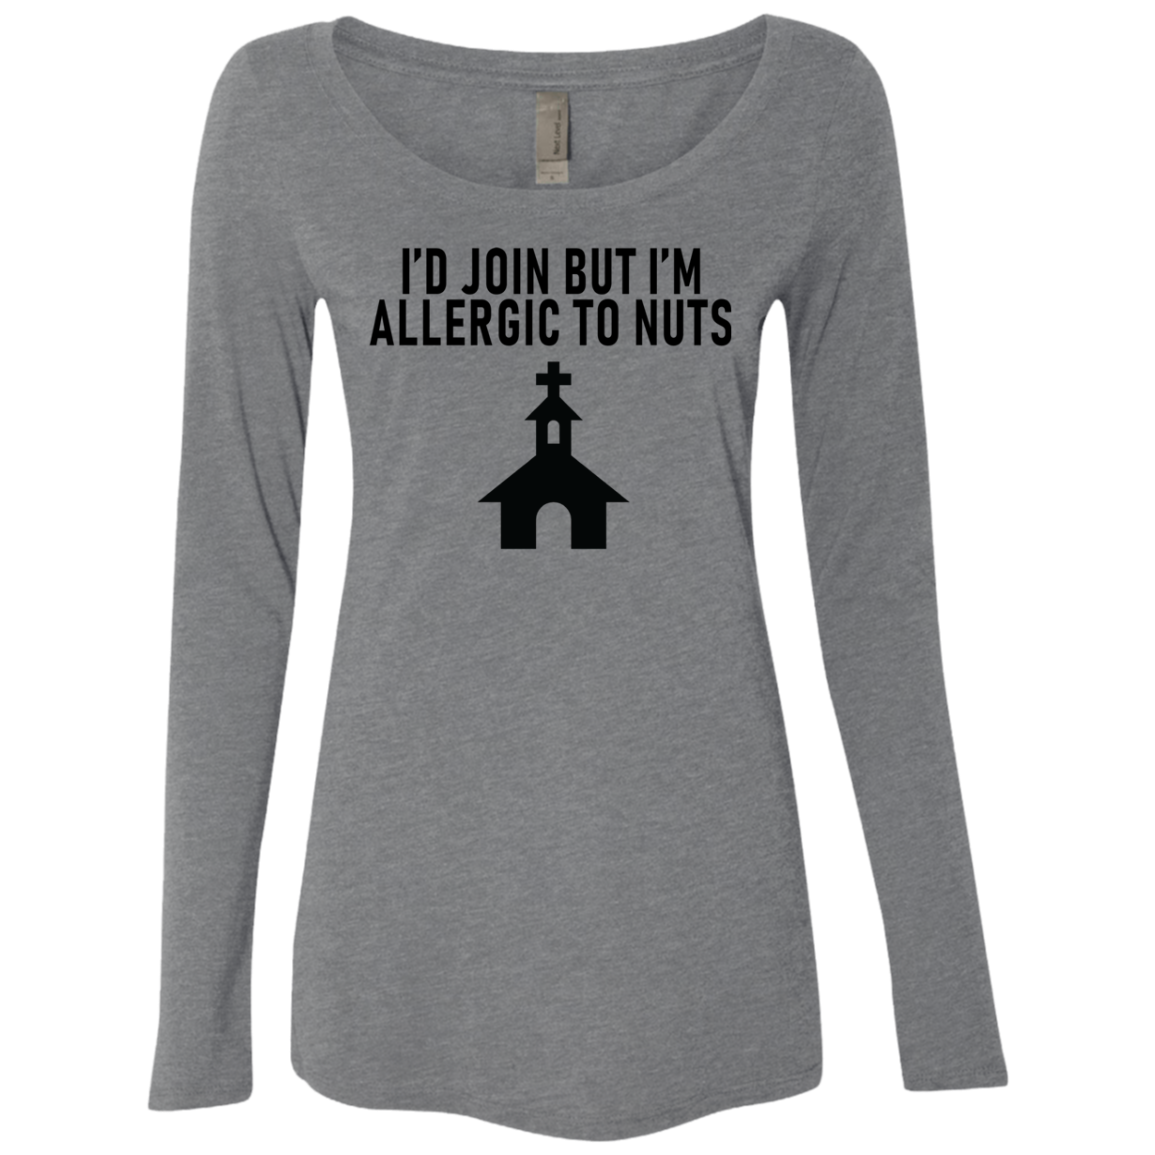 I'd Join But I'm Allergic To Nuts Women's Long Sleeve Tee